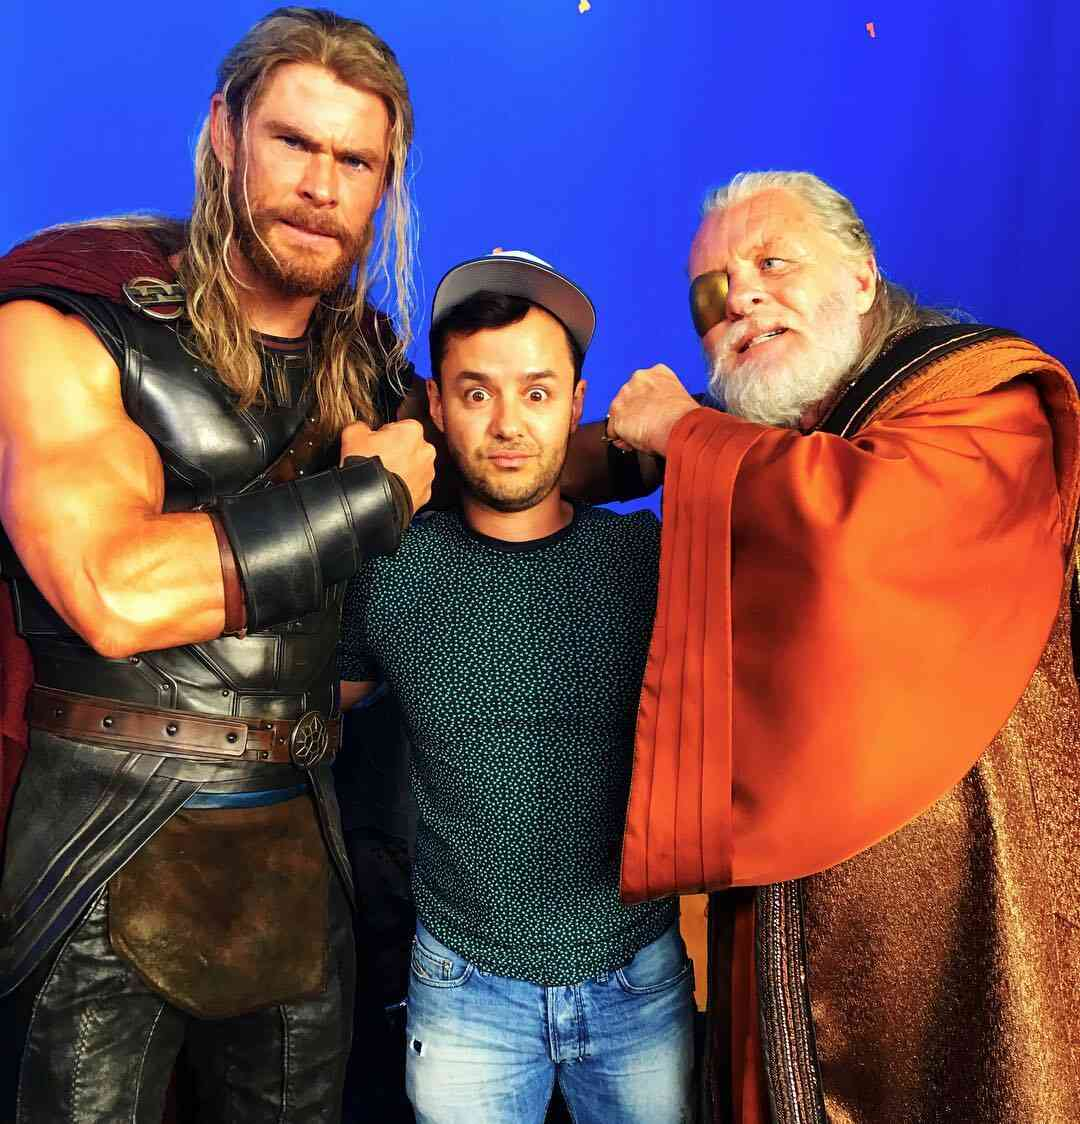 Odin is surely not wearing his battle suit here!